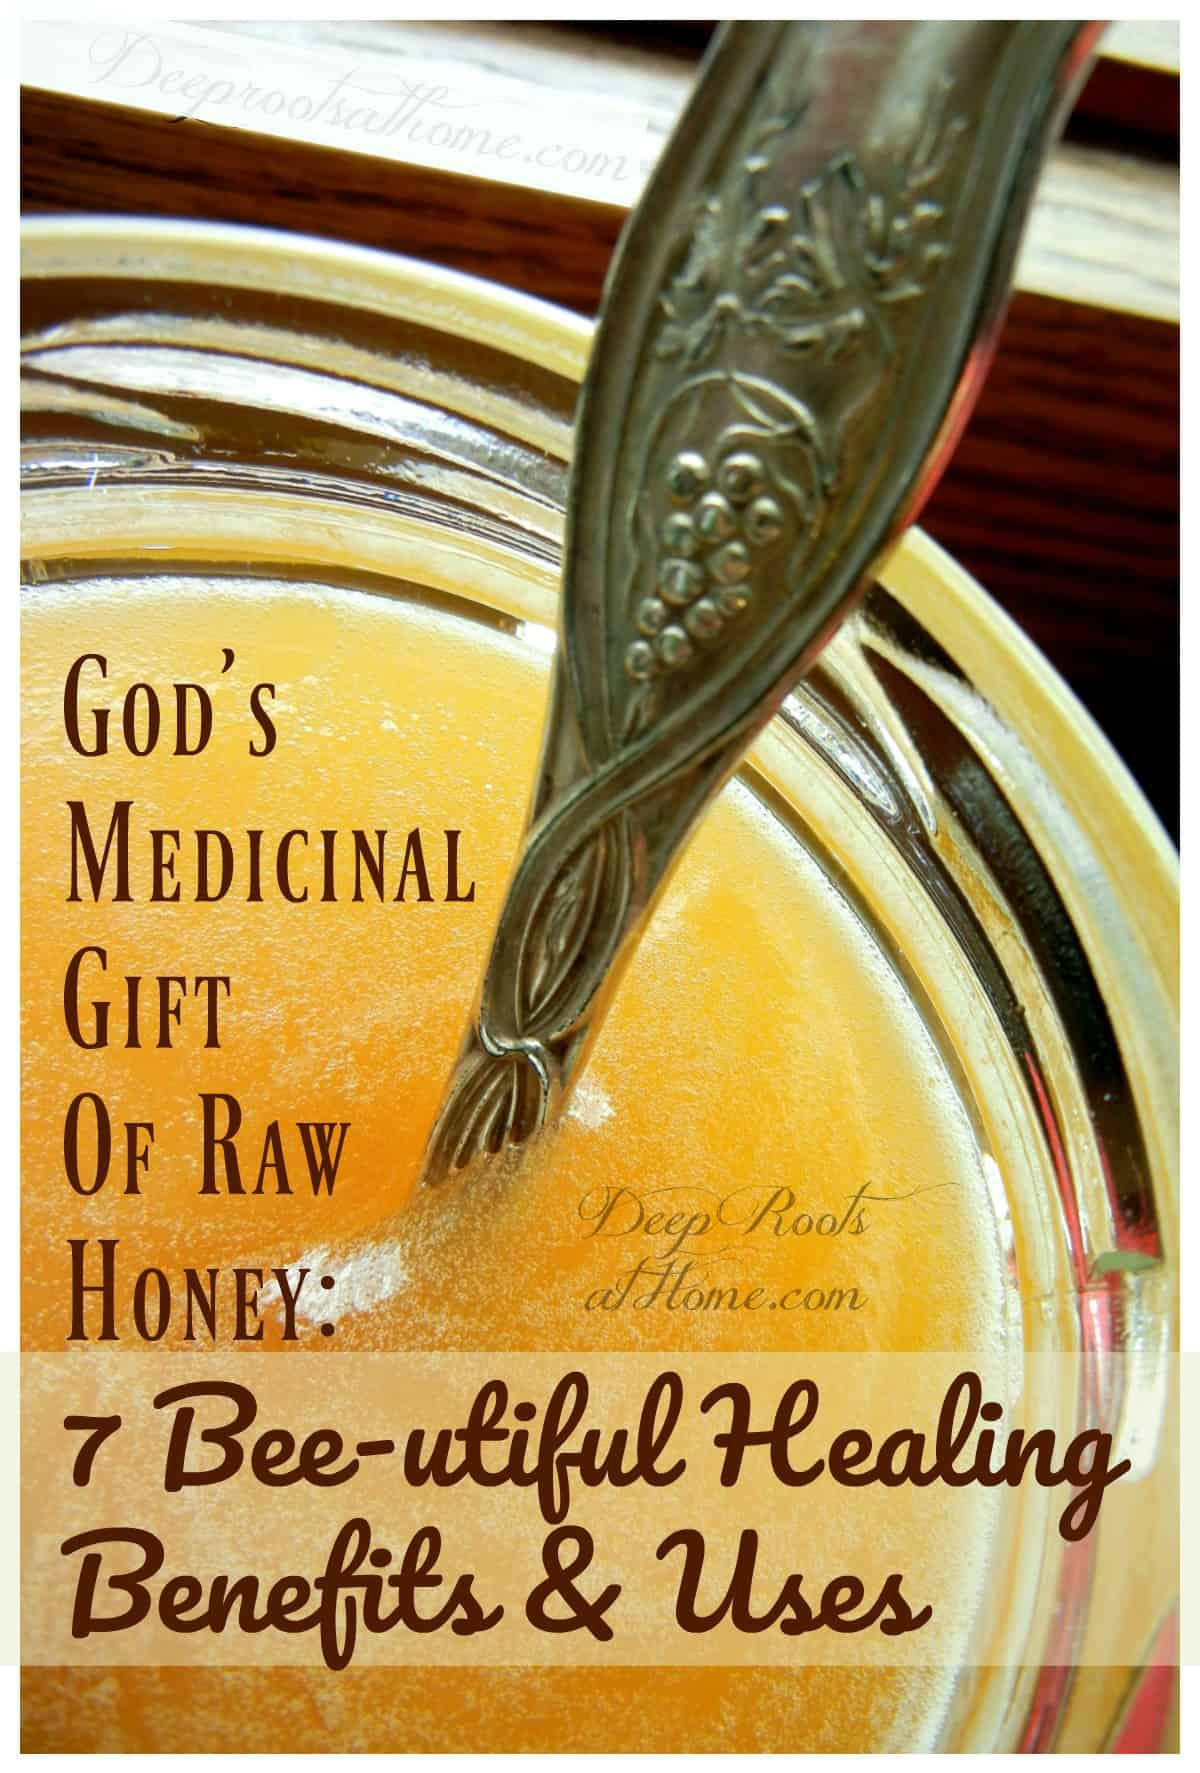 God's Medicinal Gift Of Raw Honey: 7 Bee-utiful Healing Benefits & Uses. A beautiful glass honey pot.